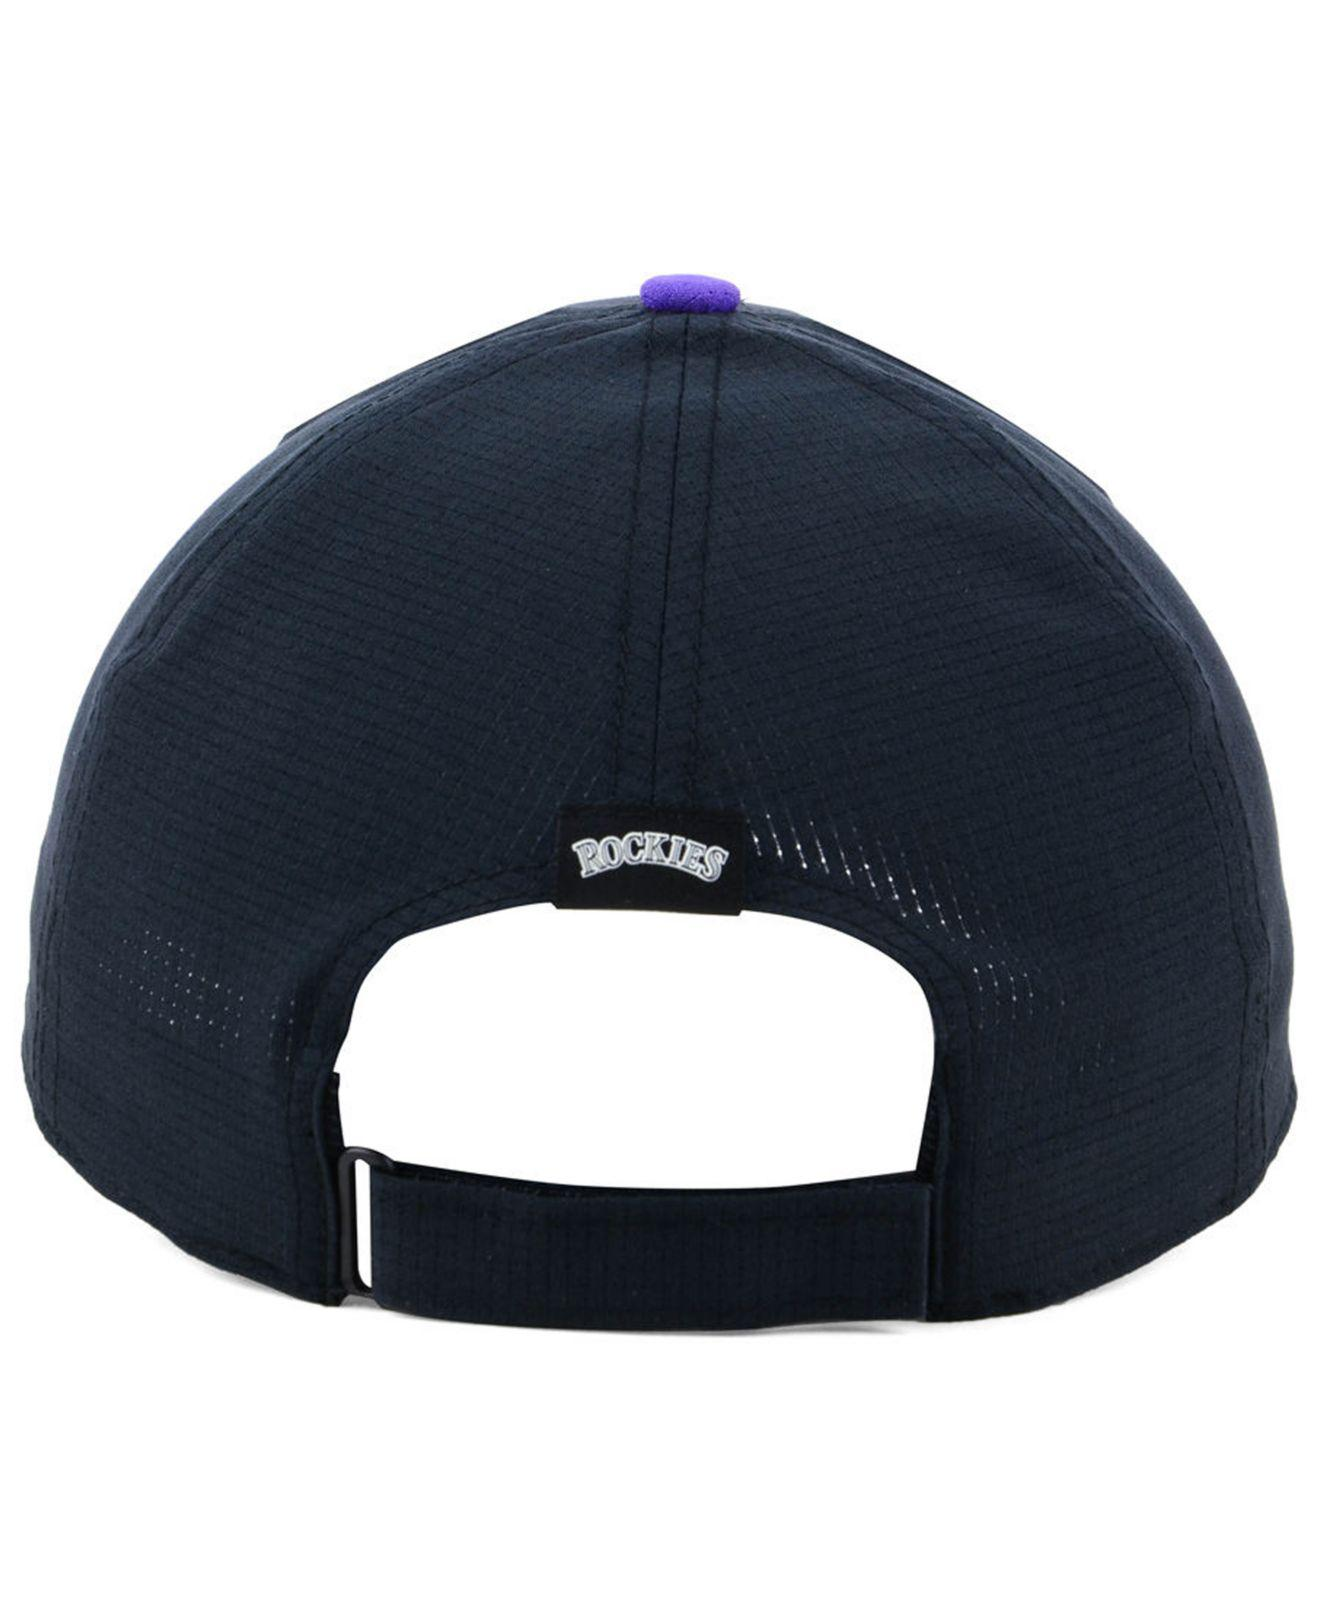 5f3d88e81a1 ... coupon code for under armour black colorado rockies driver cap for men  lyst. view fullscreen